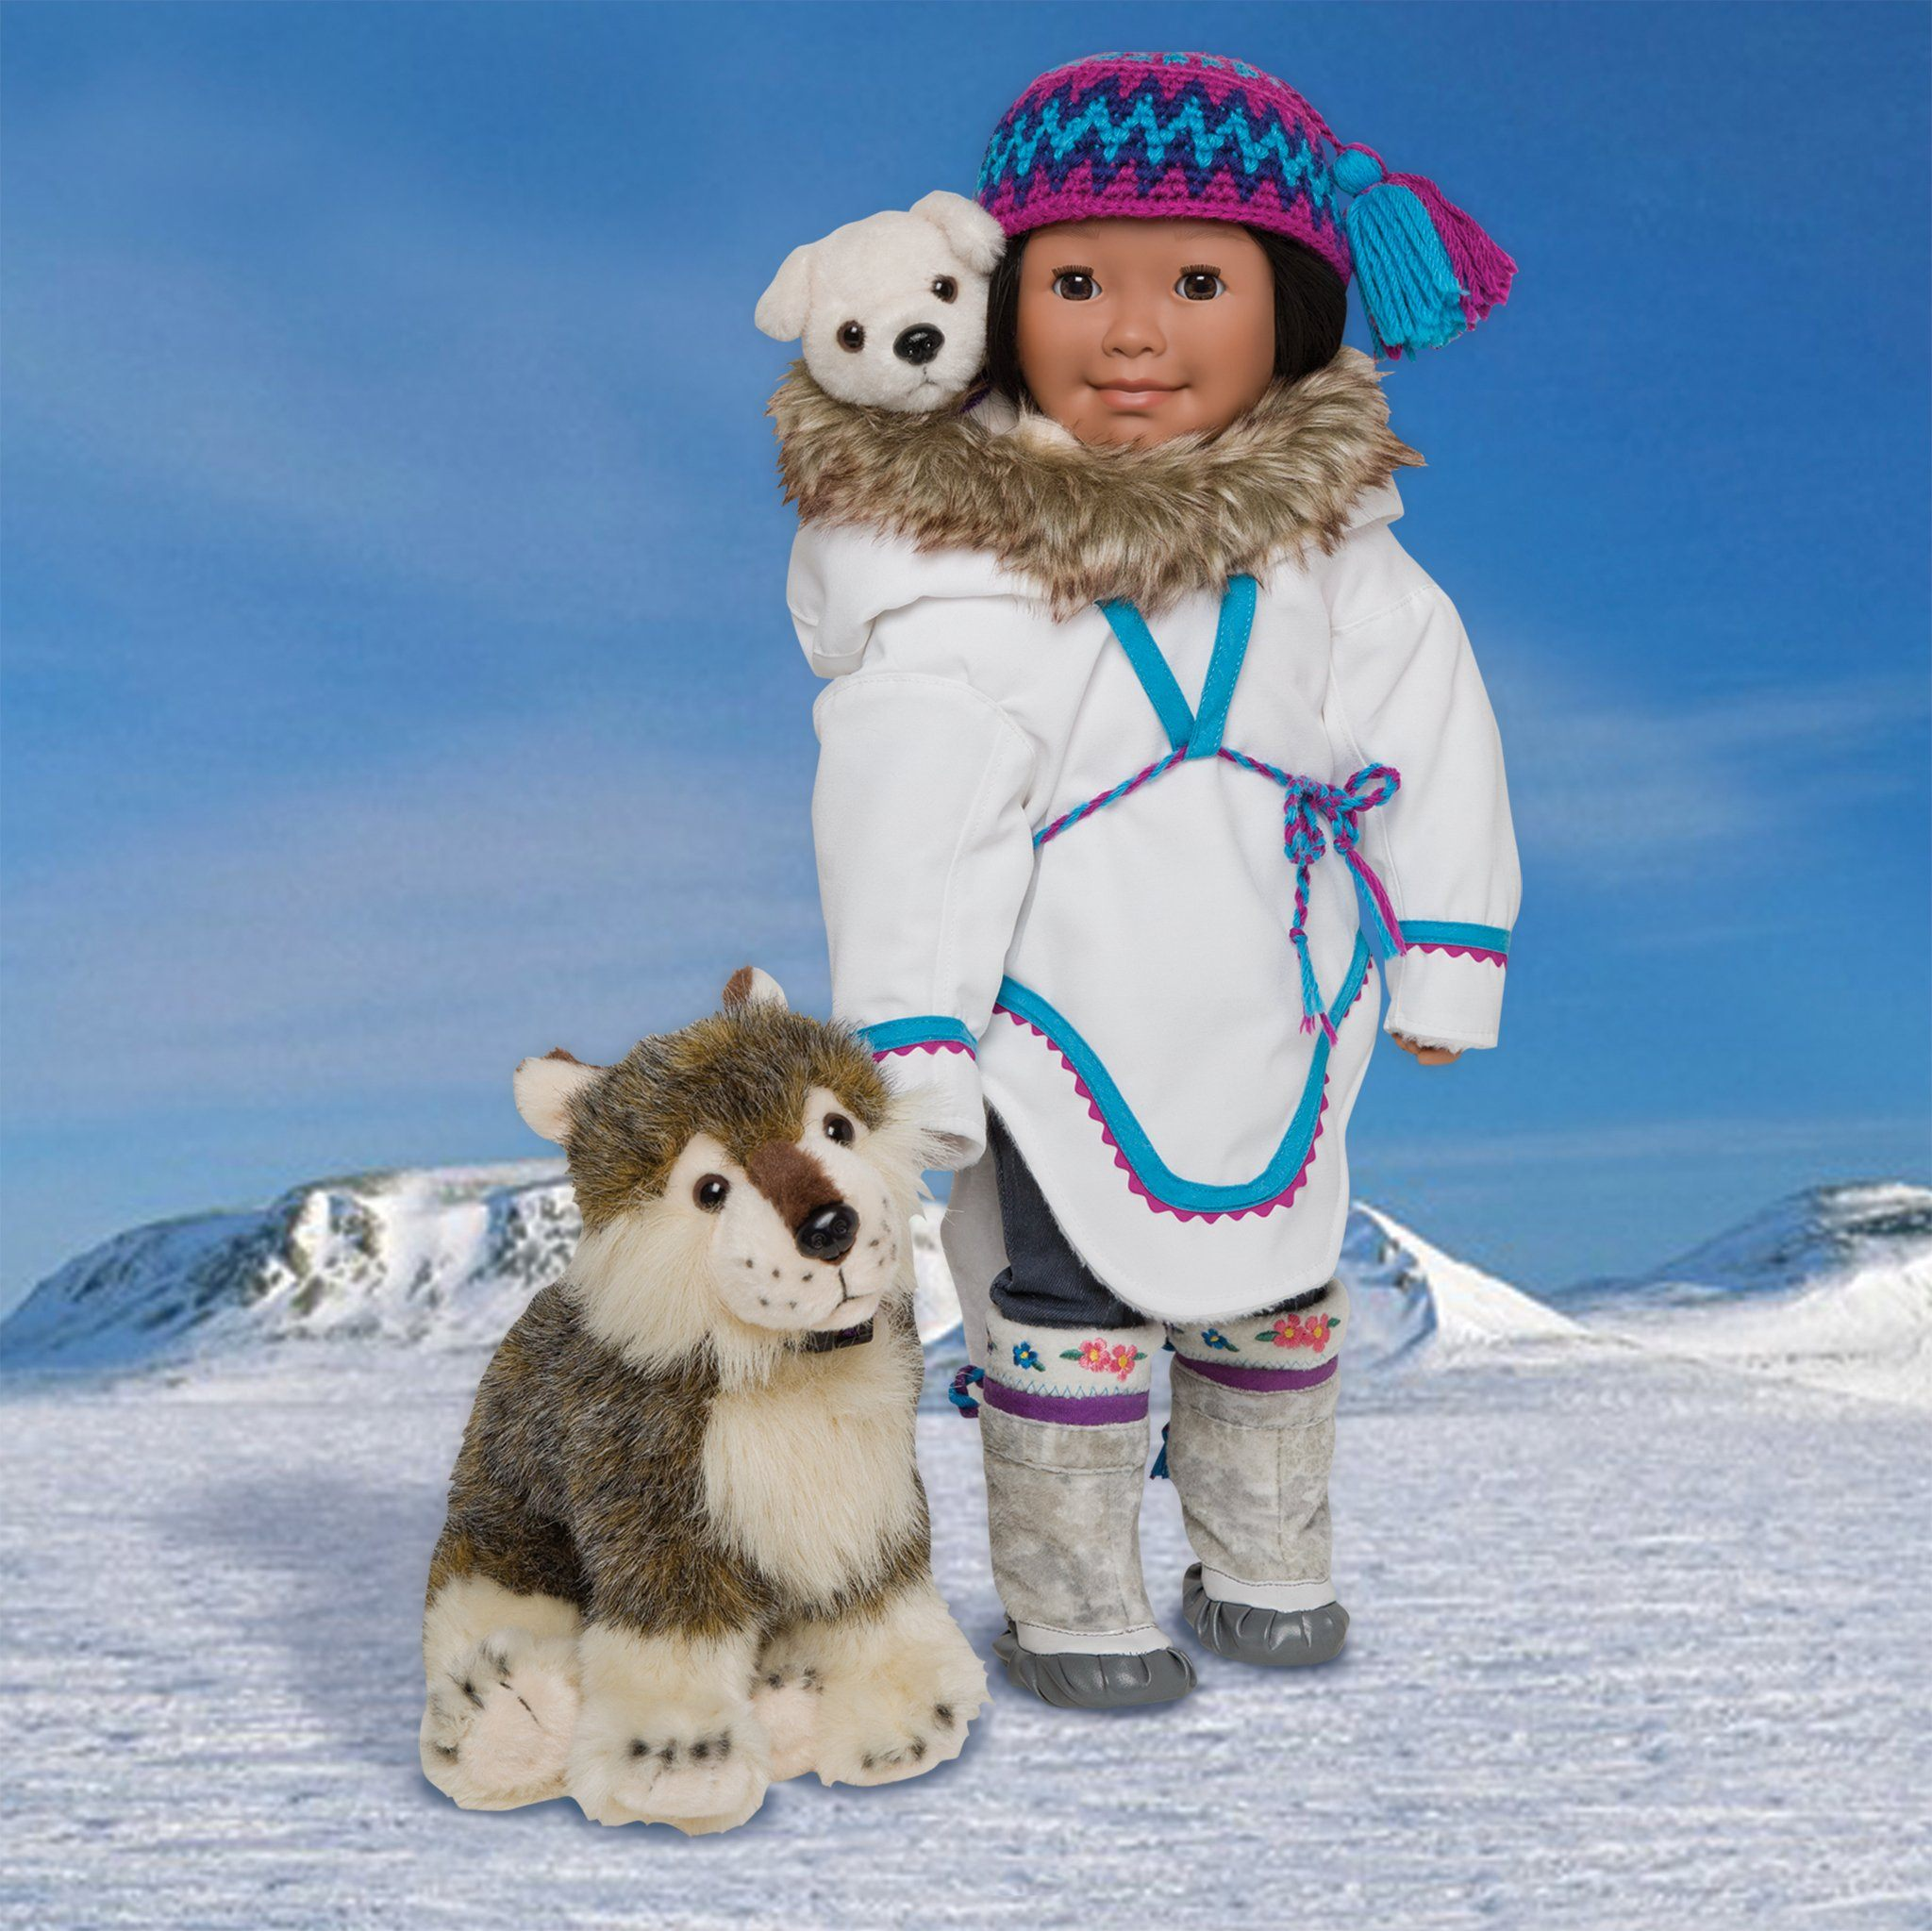 Amauti shown on Maplelea doll Saila with Pang Hat and 2 dogs Nuklilik and Nanuq on a Nunavut background.